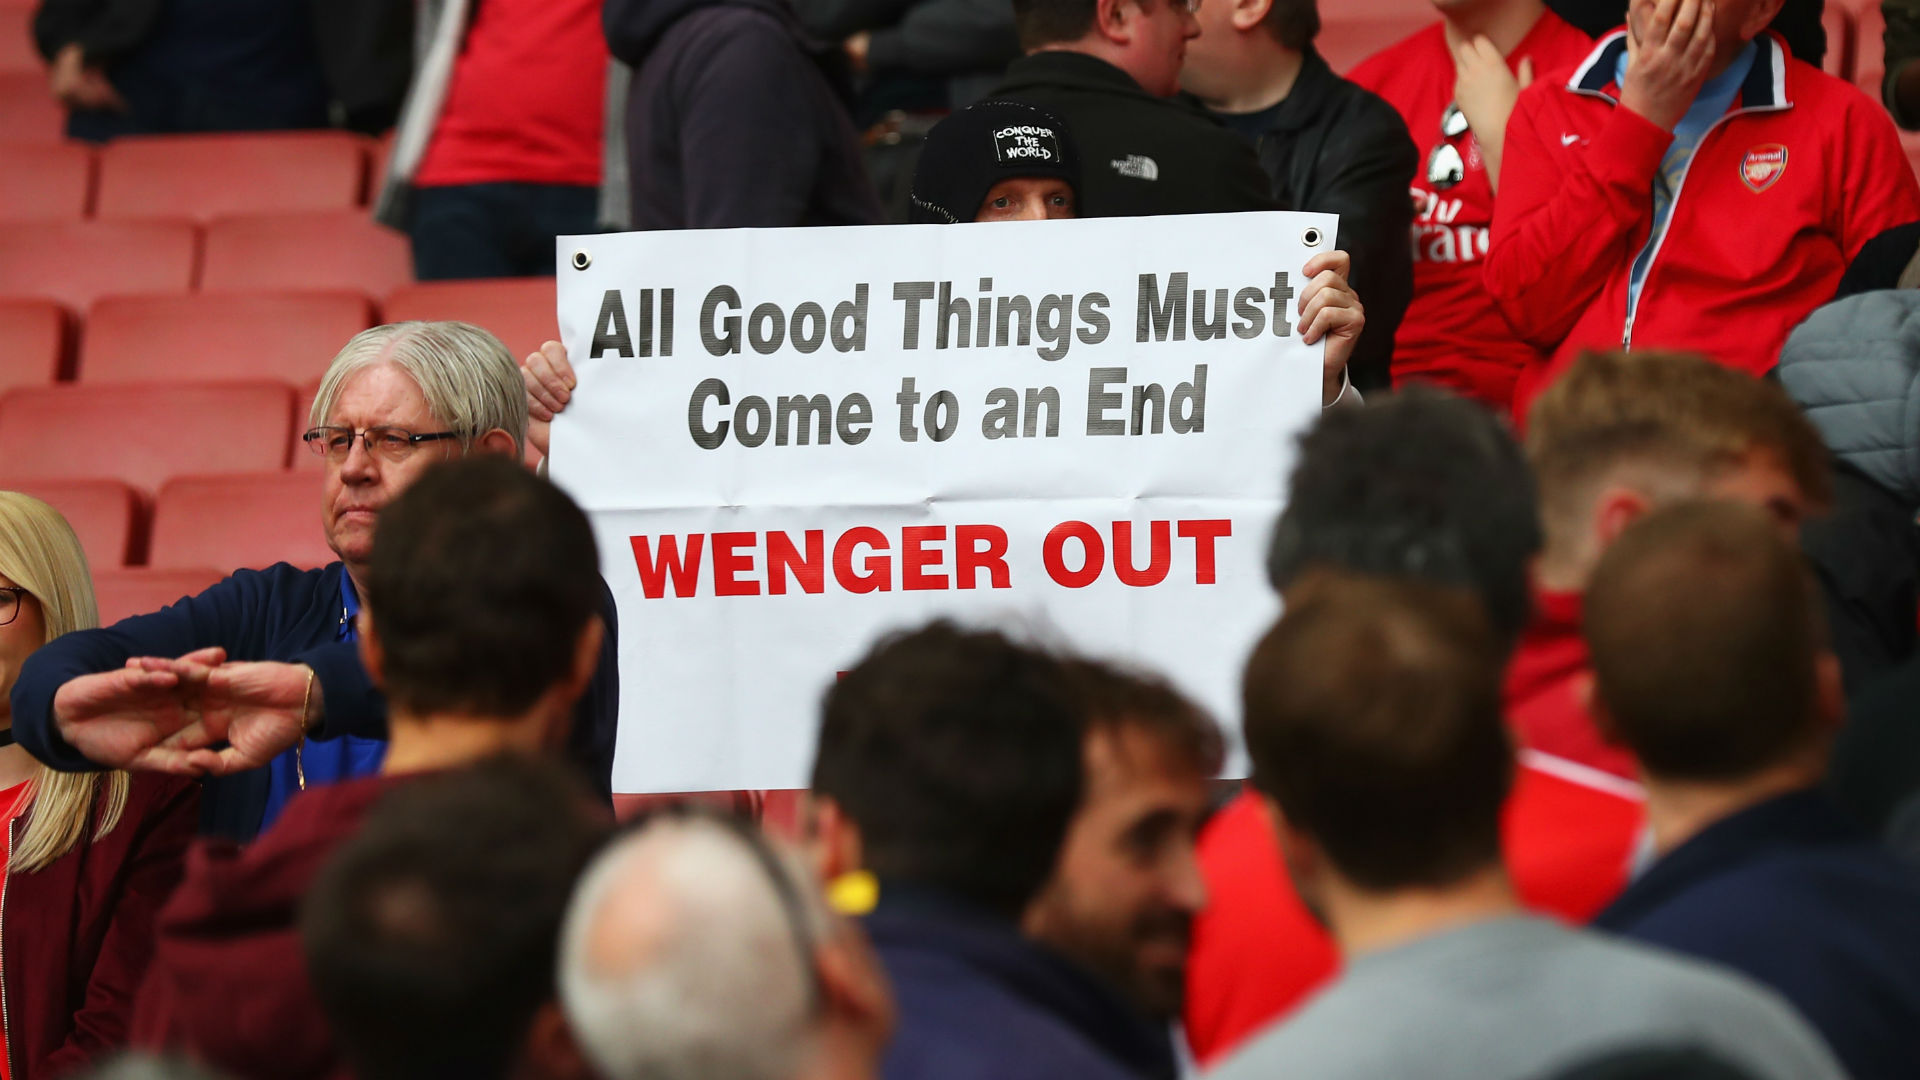 'Wenger Out' protest casts unhelpful light on Arsenal's trip to Spurs